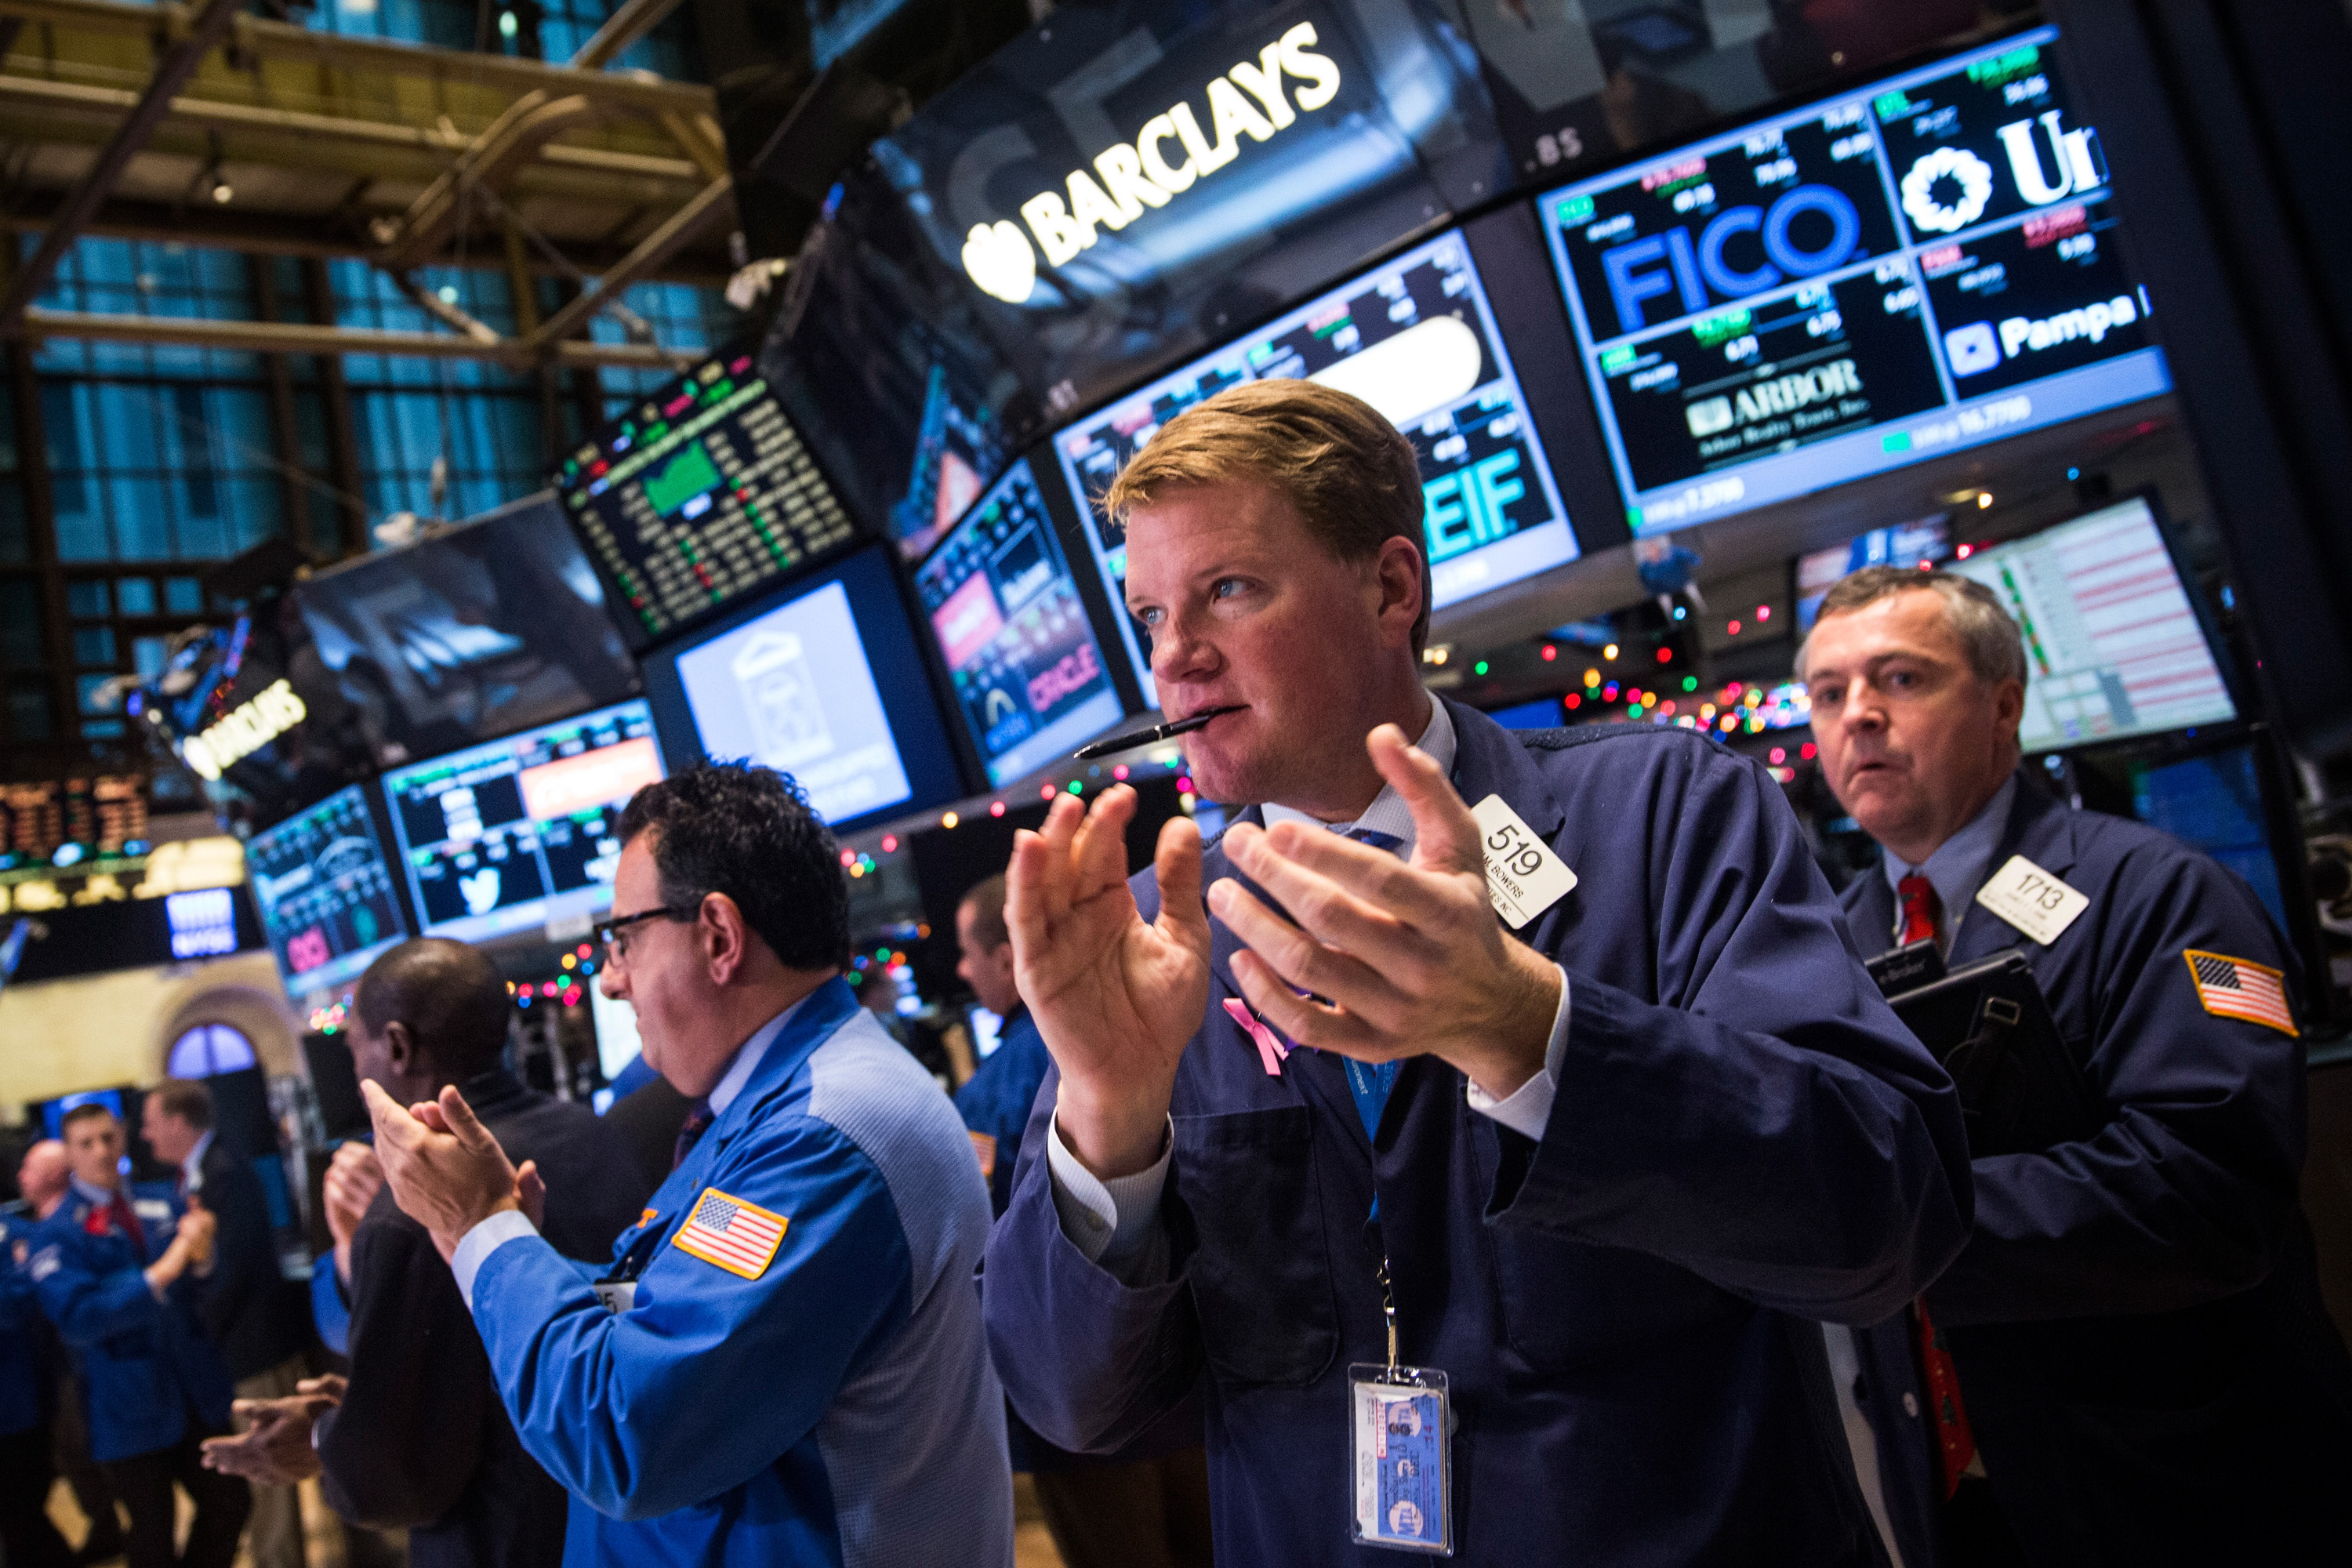 Traders on the floor of the New York Stock Exchange on Dec. 18, 2014.